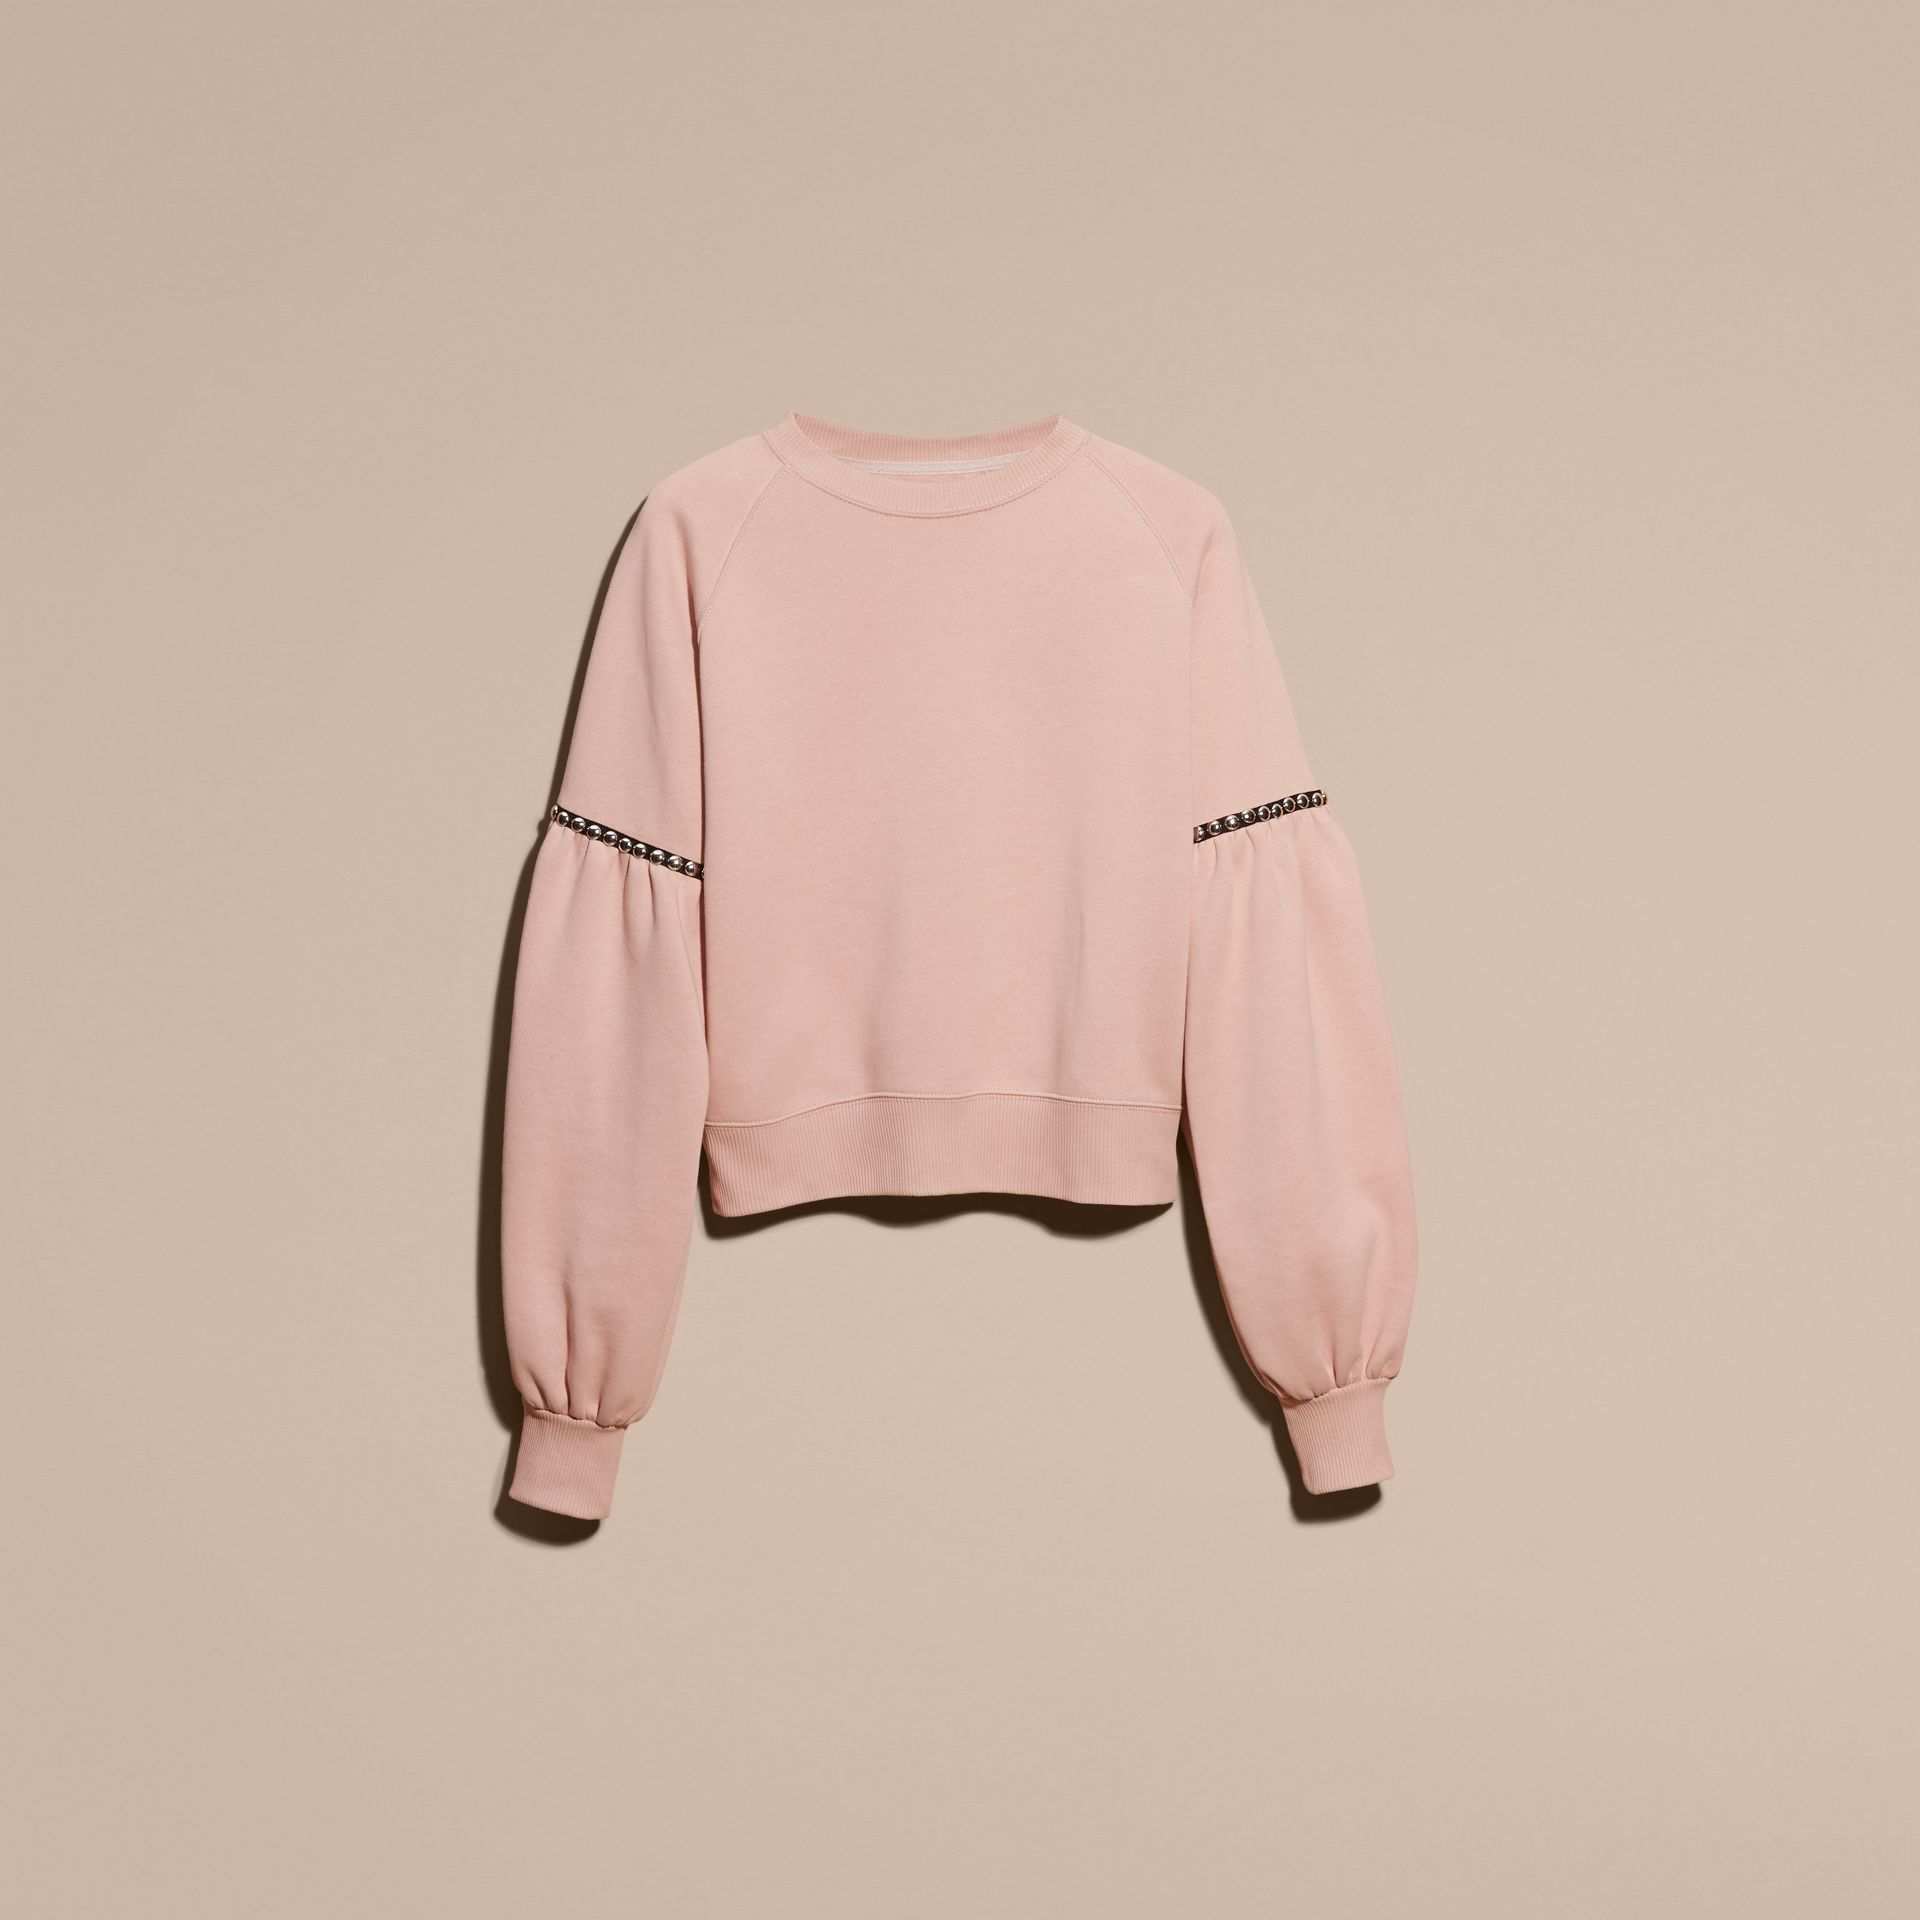 Rose cendré Sweat-shirt en jersey de coton mélangé avec manches bouffantes - photo de la galerie 4